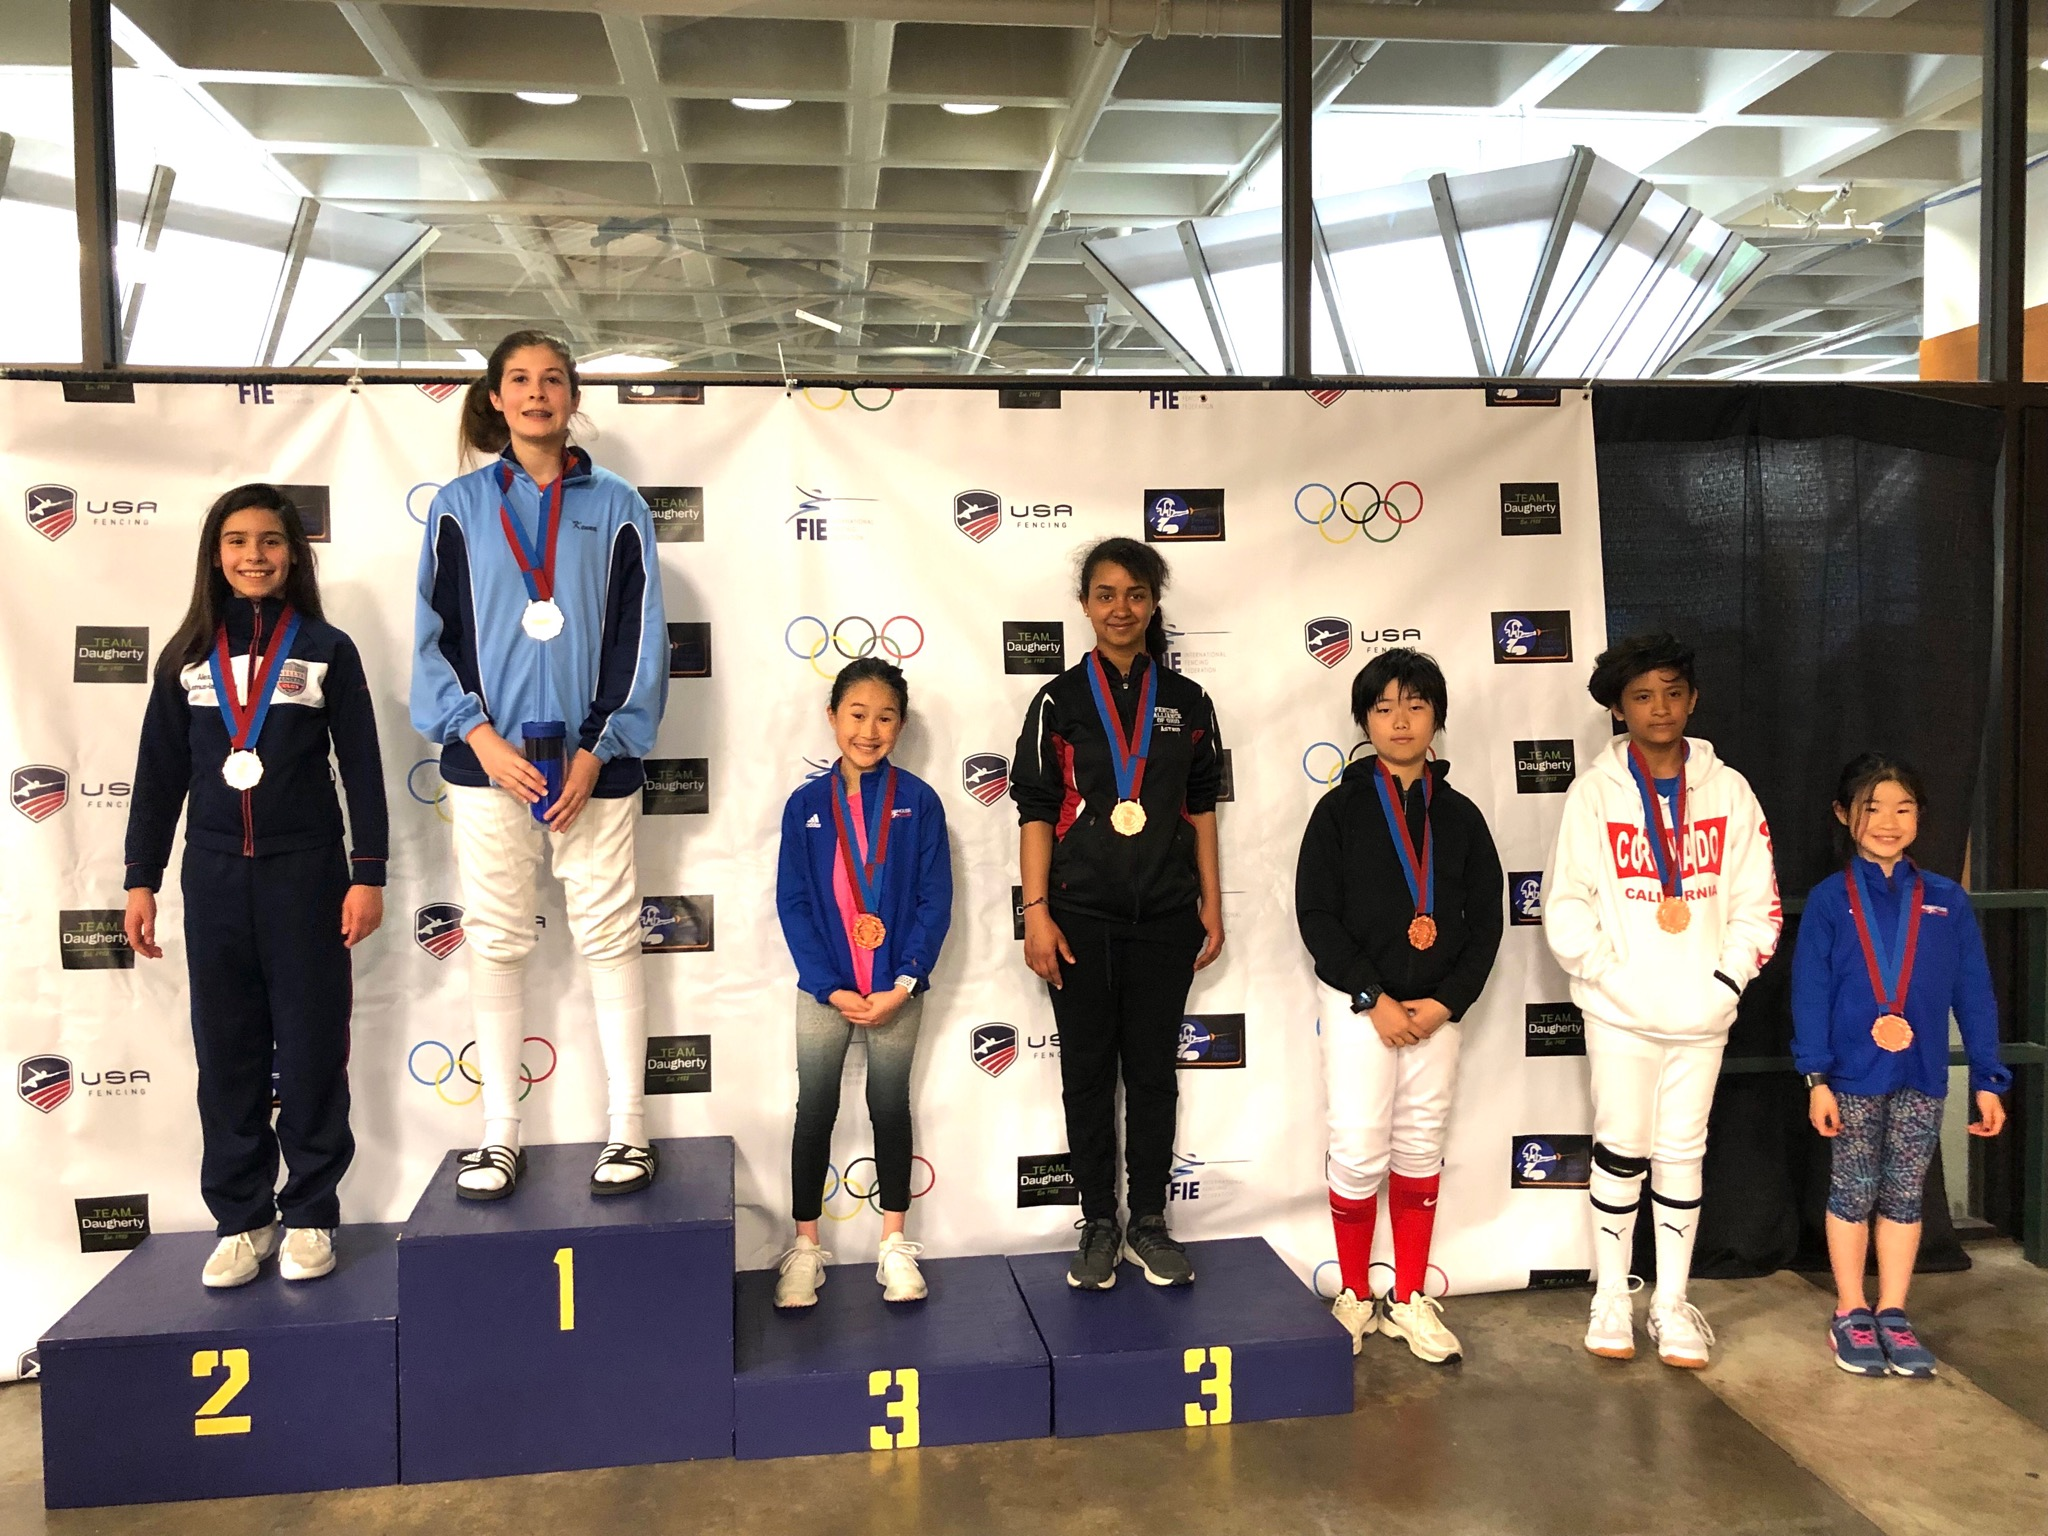 Pictured: Audrey Young wins a Bronze Medal and Charlotte Young wins a Top-8 Medal in Y-12 Women's Saber